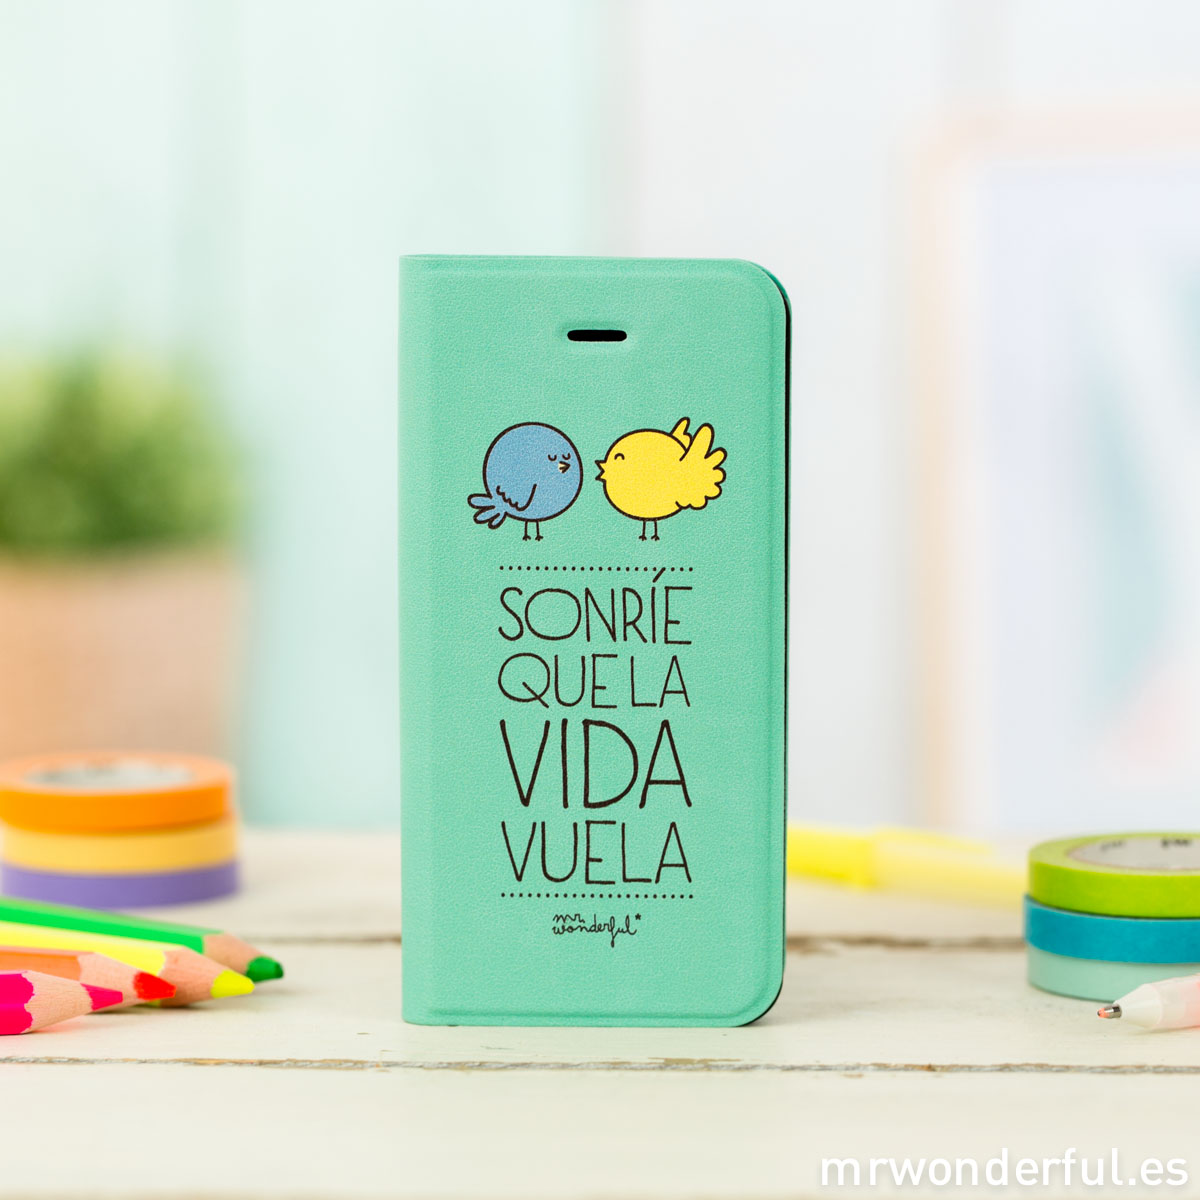 mrwonderful_MRFOL003_funda-mint-iphone-5-5s_sonrie-vida-vuela-7